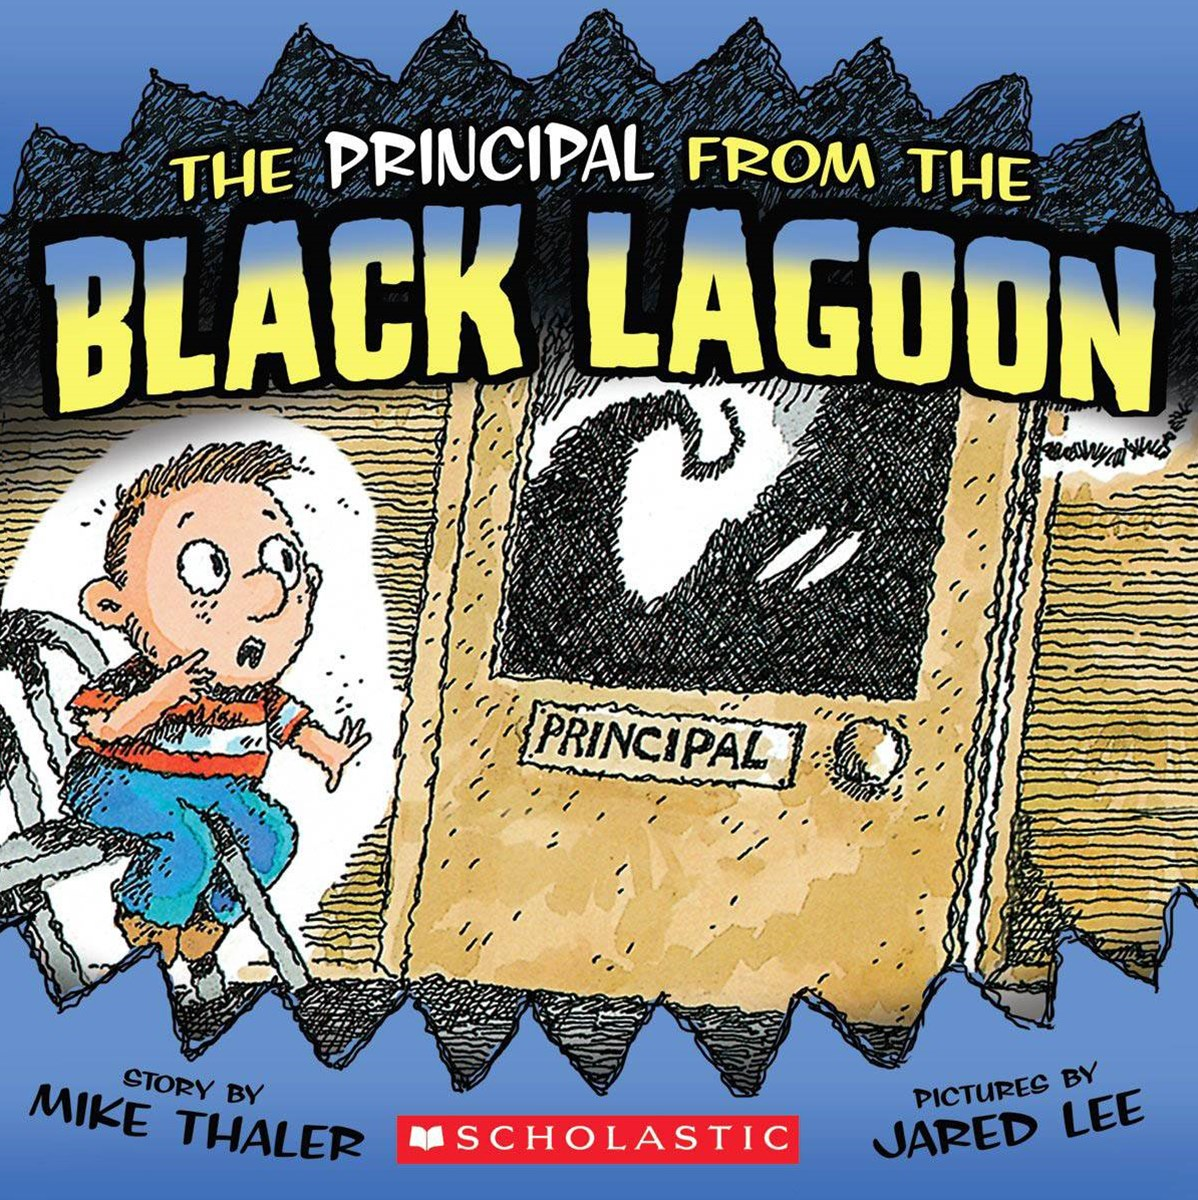 The Principal from the Black Lagoon